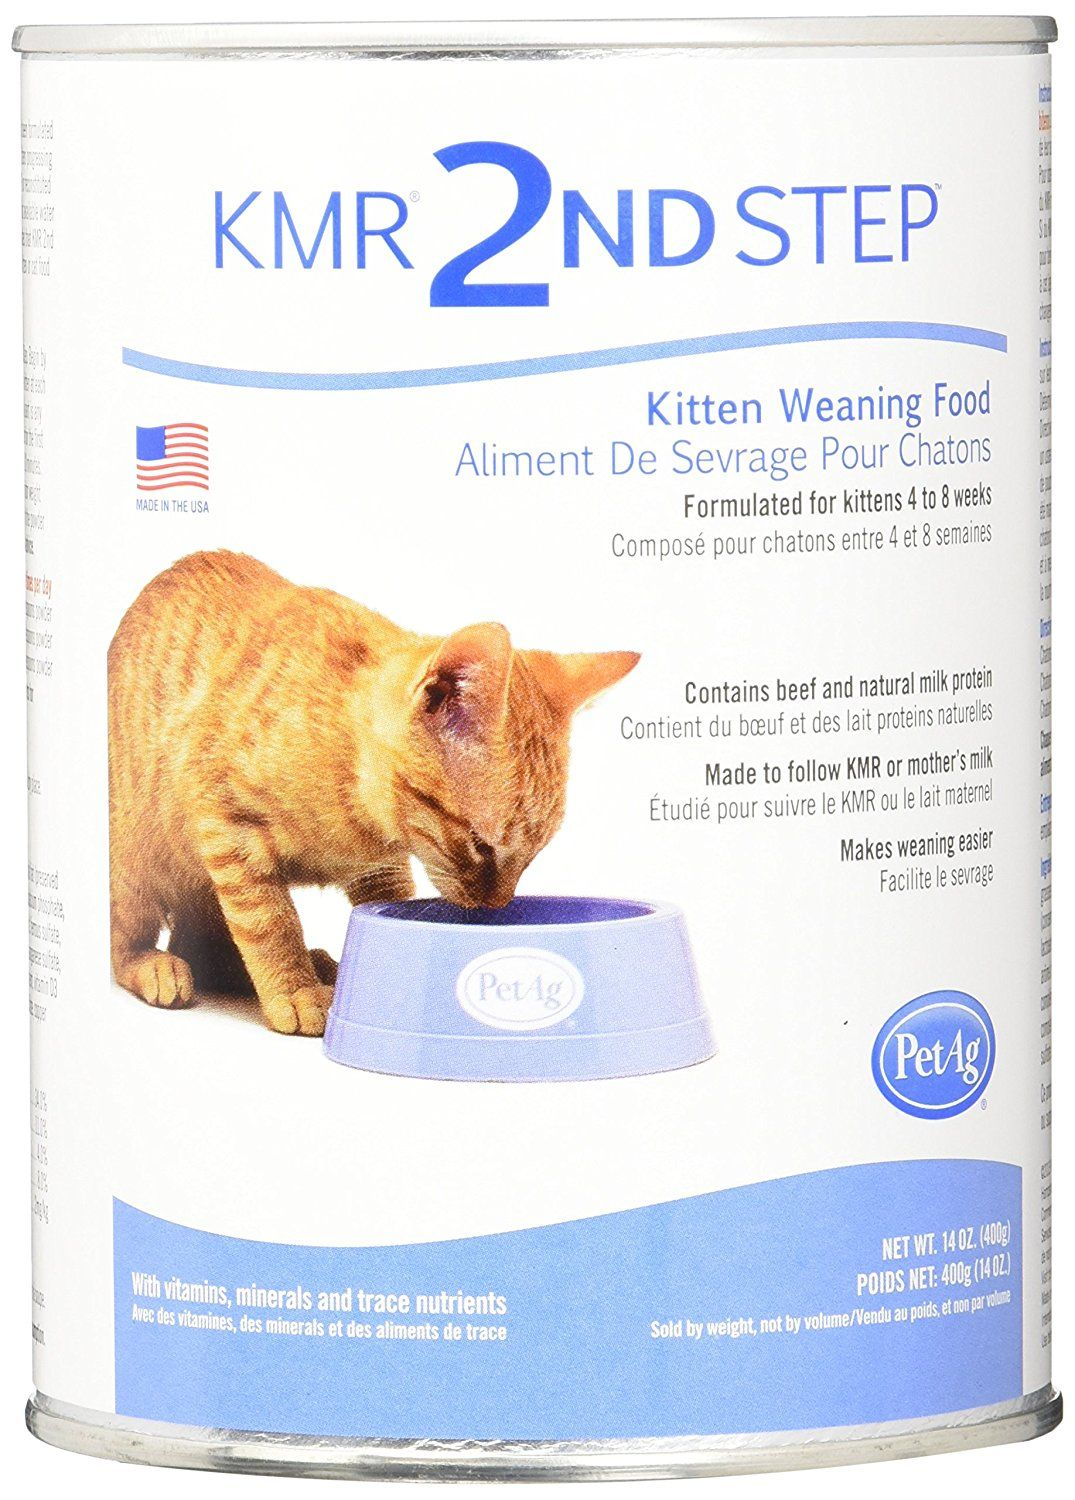 Amazon Com Petag Kmr 2nd Step Kitten Weaning Food 14oz Pet Milk Replacers Pet Supplies Weaning Foods Weaning Cat Food Coupons